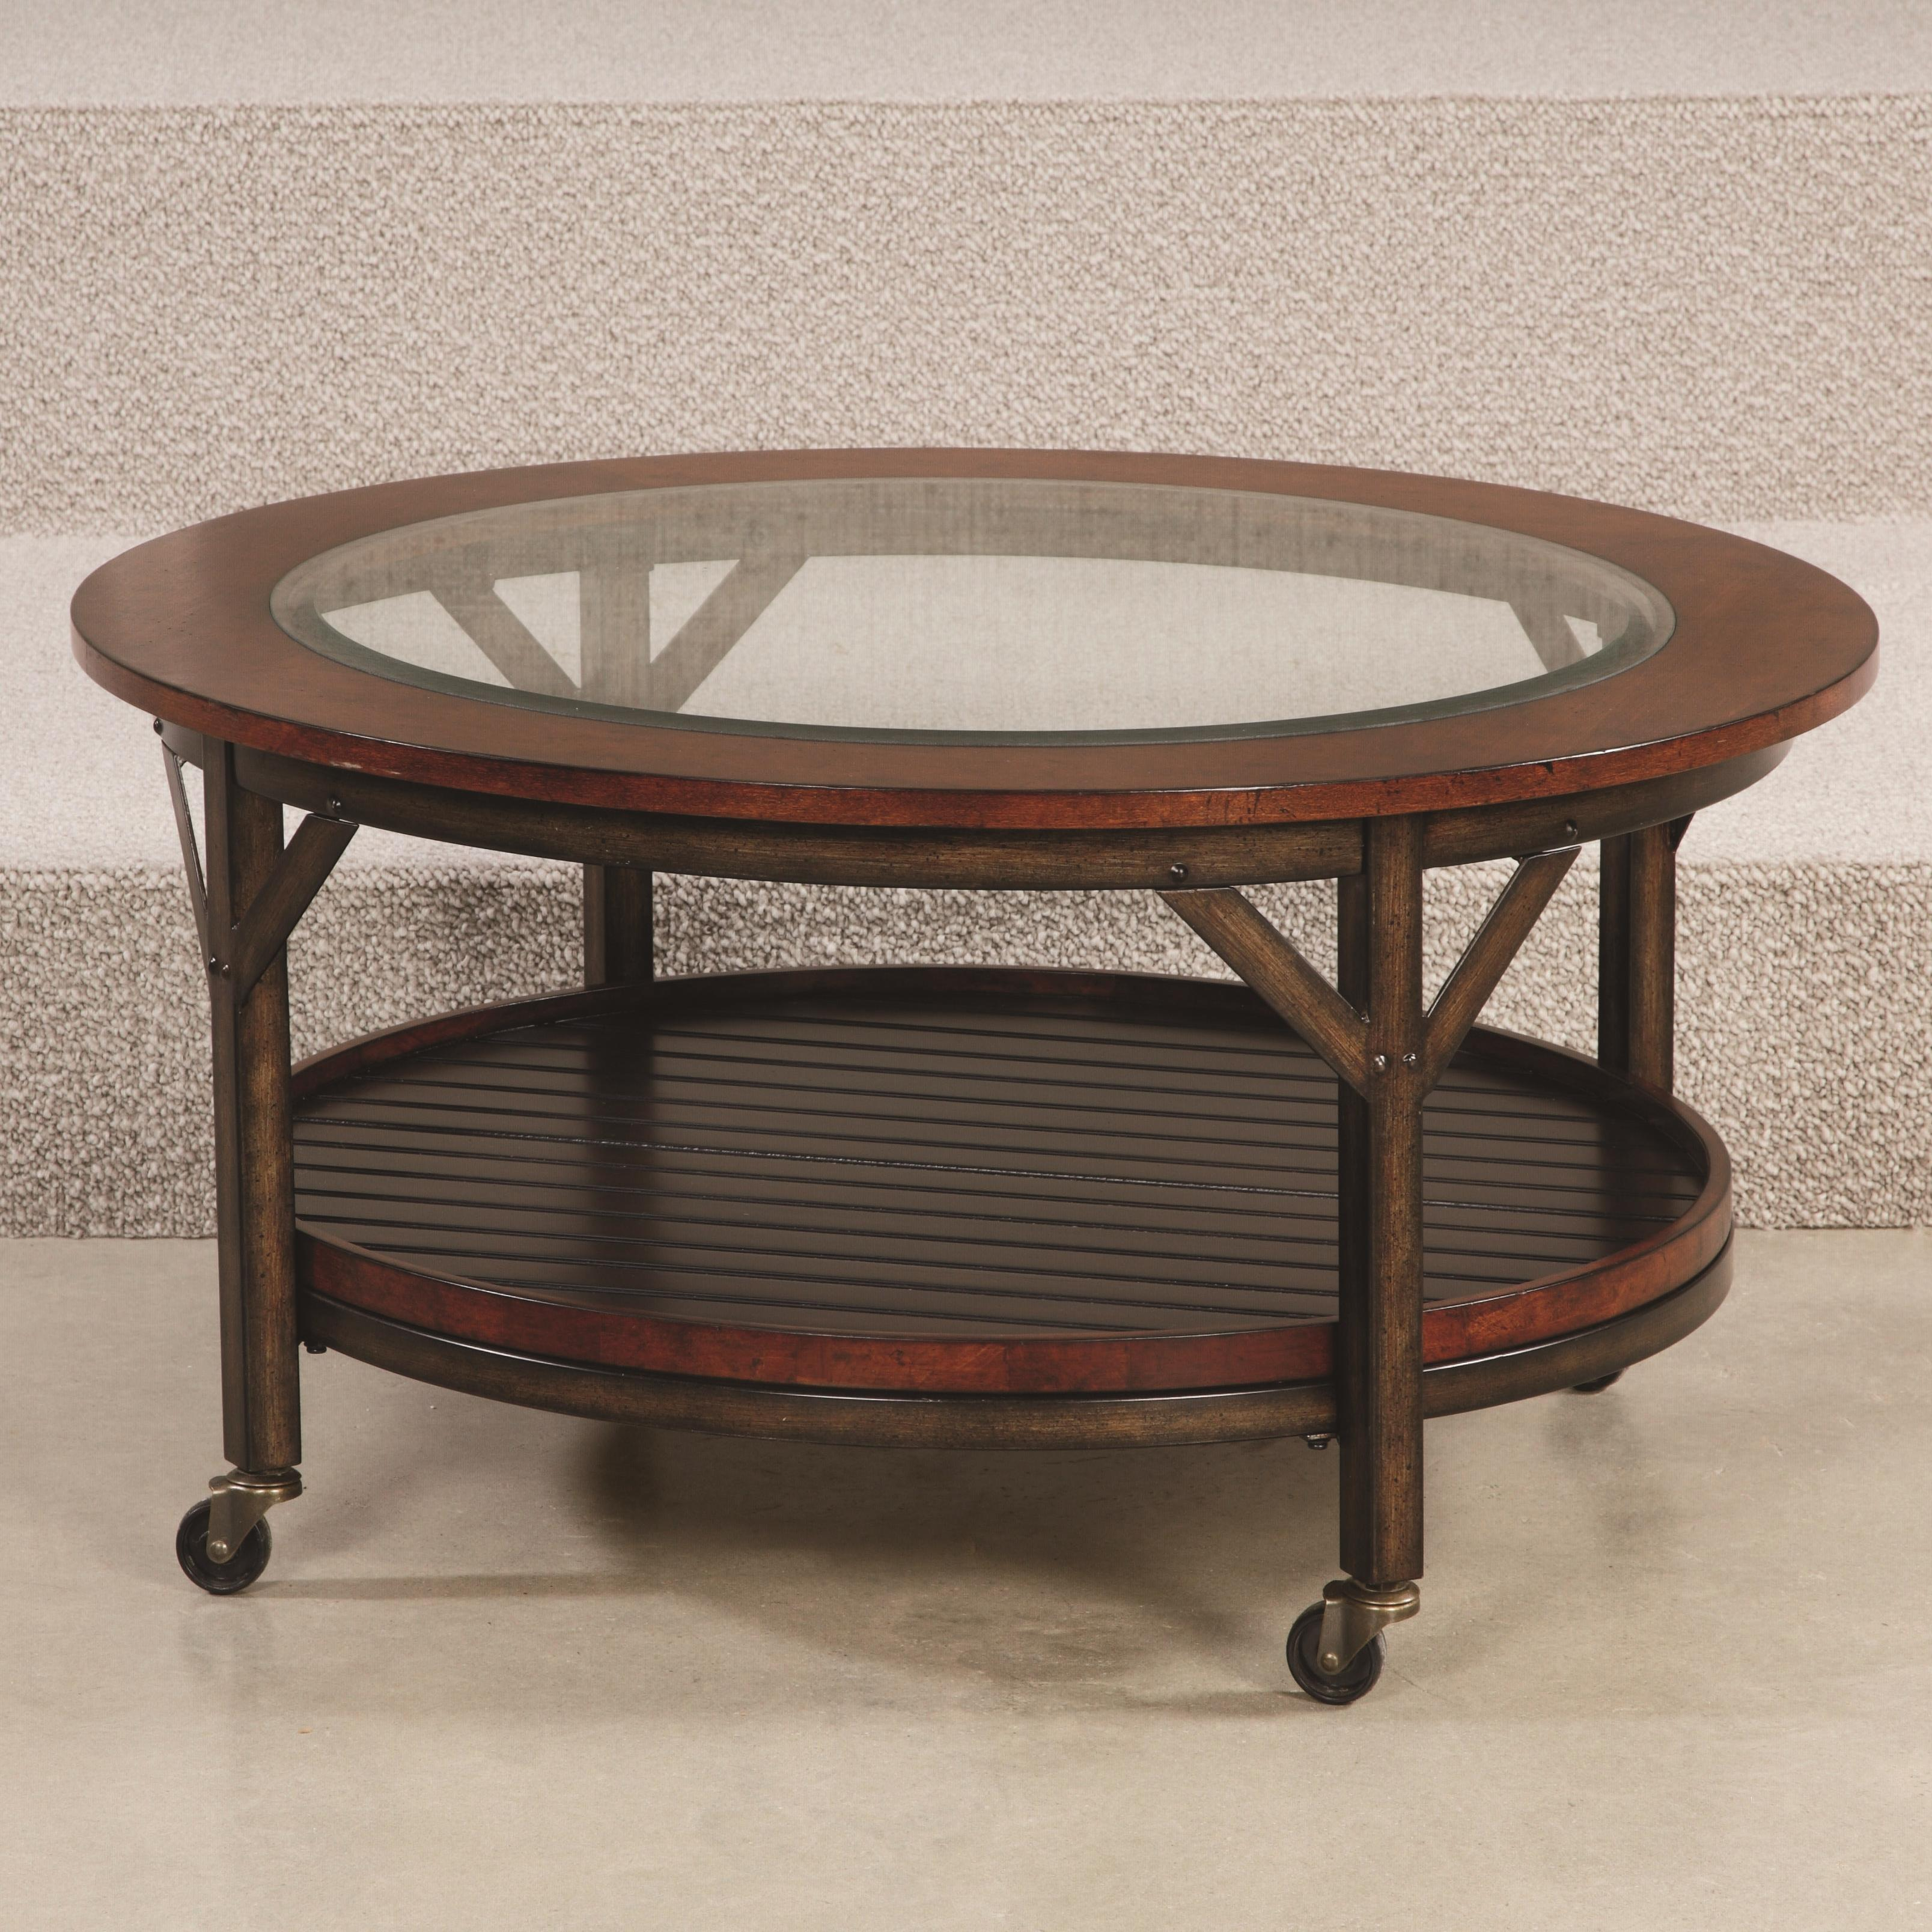 hammary mercantile round cocktail table with 1 fixed shelf. Black Bedroom Furniture Sets. Home Design Ideas